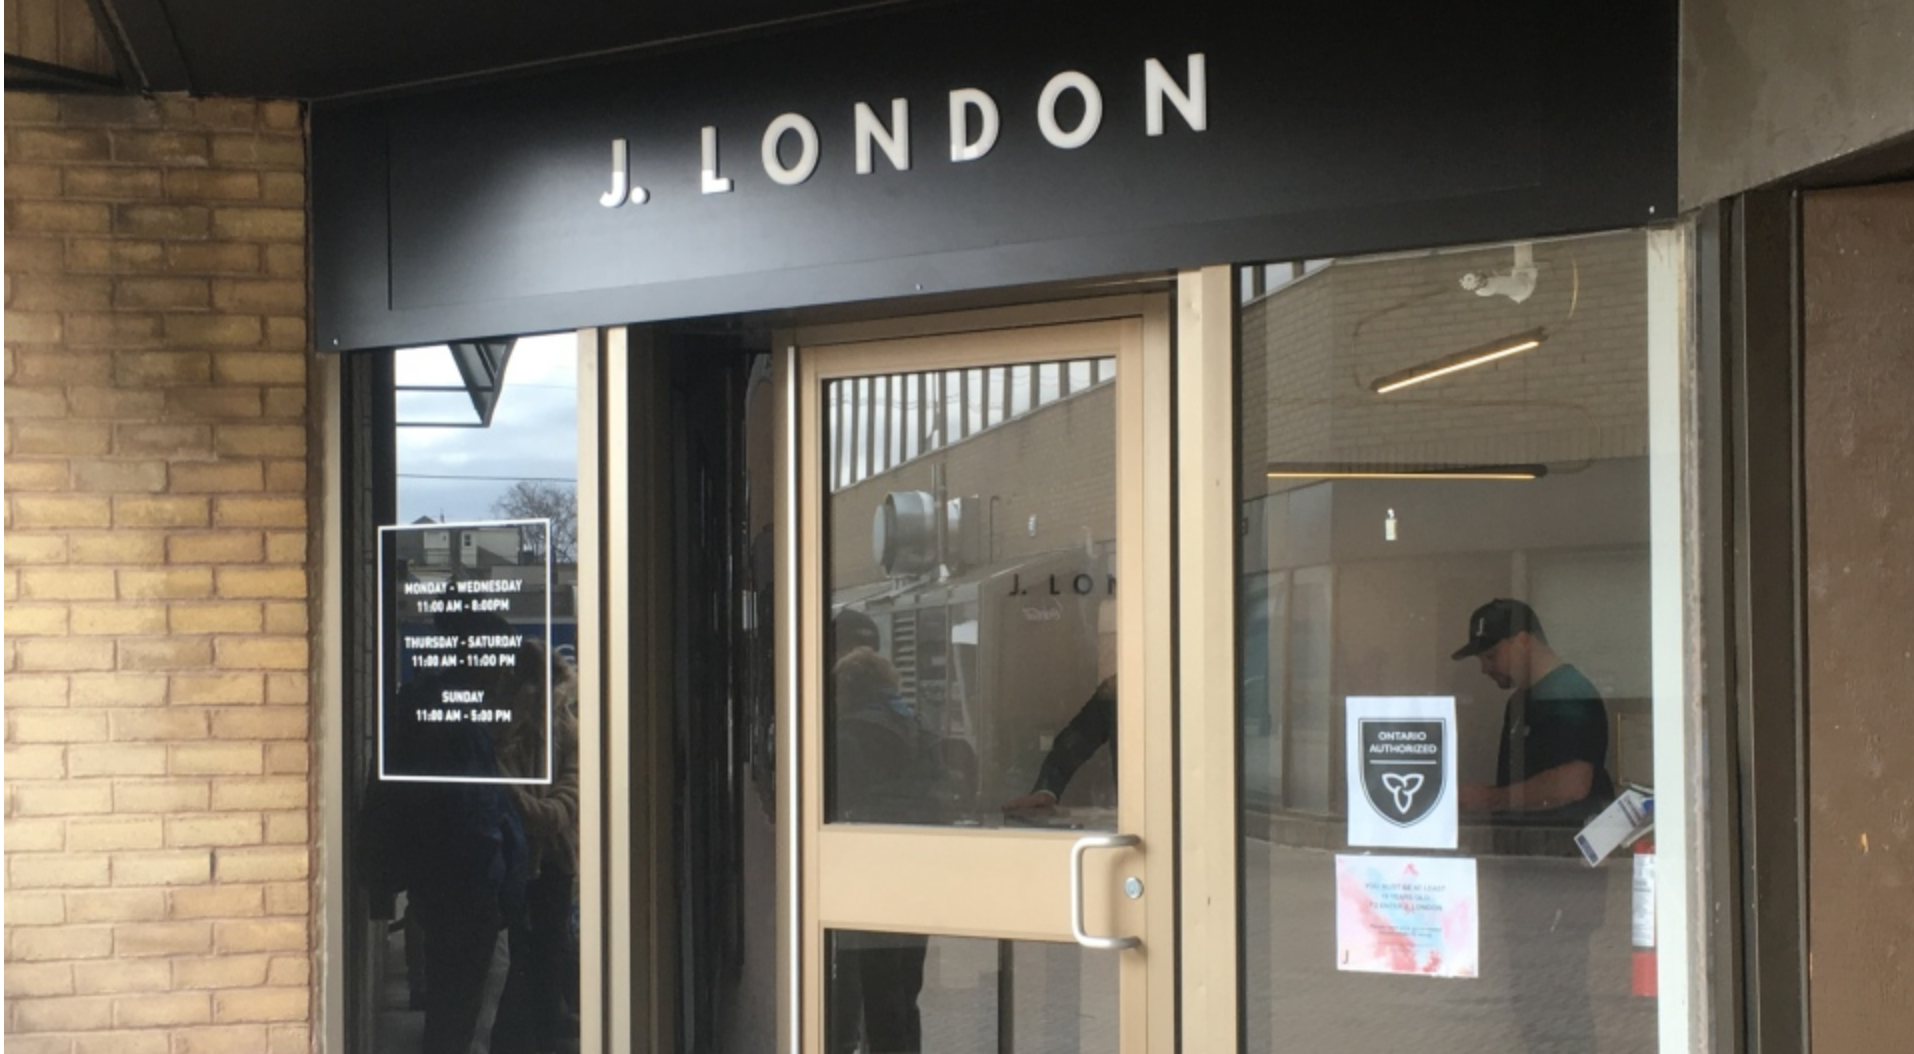 J. London, the second cannabis storefront in London, Ont. opened for business on Wednesday, April 10, 2019. (Jim Knight / CTV London)